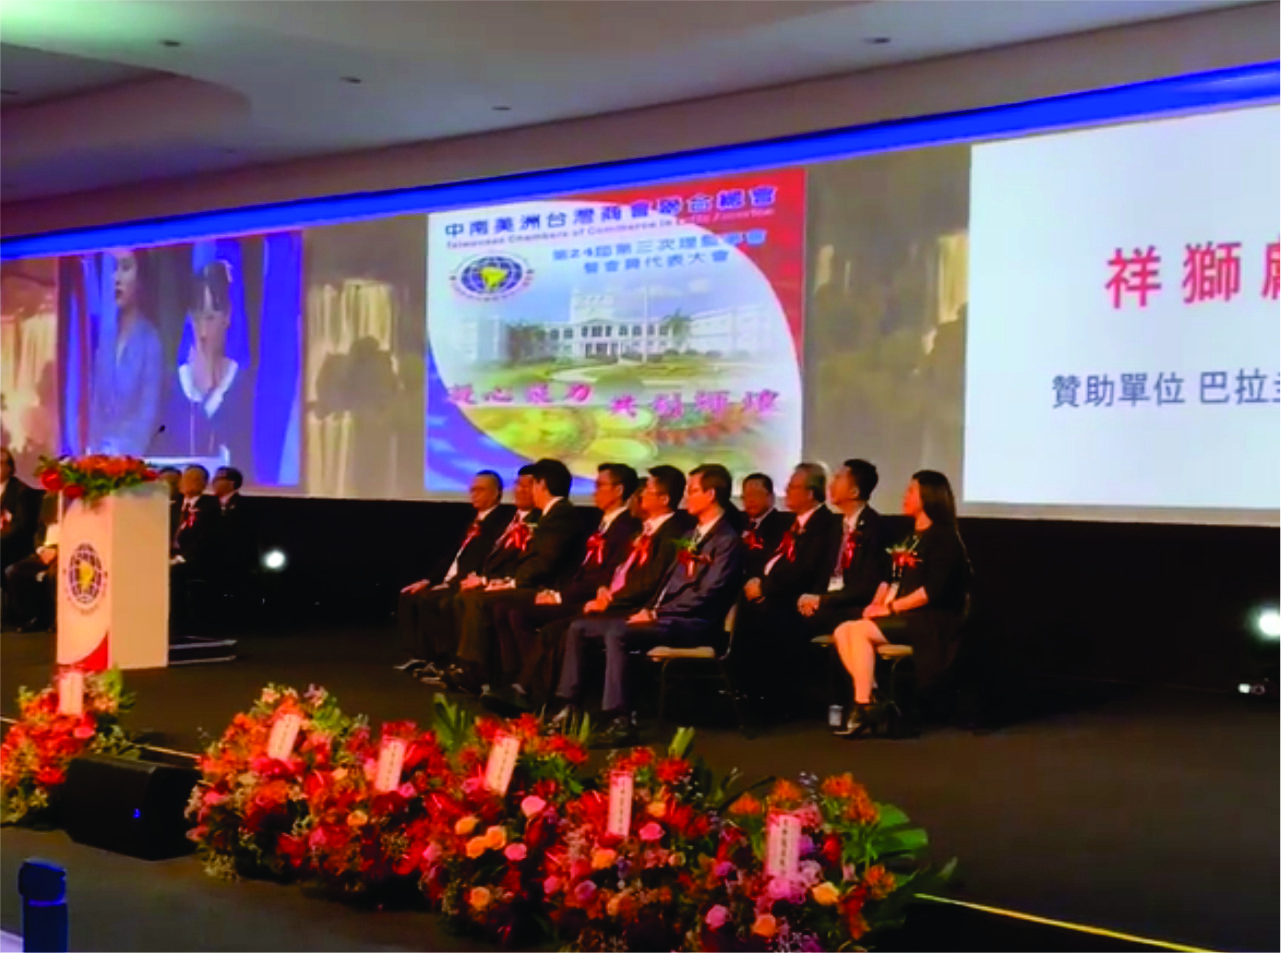 24th Meeting of the Taiwanese Chamber of Commerce in Latin America 0